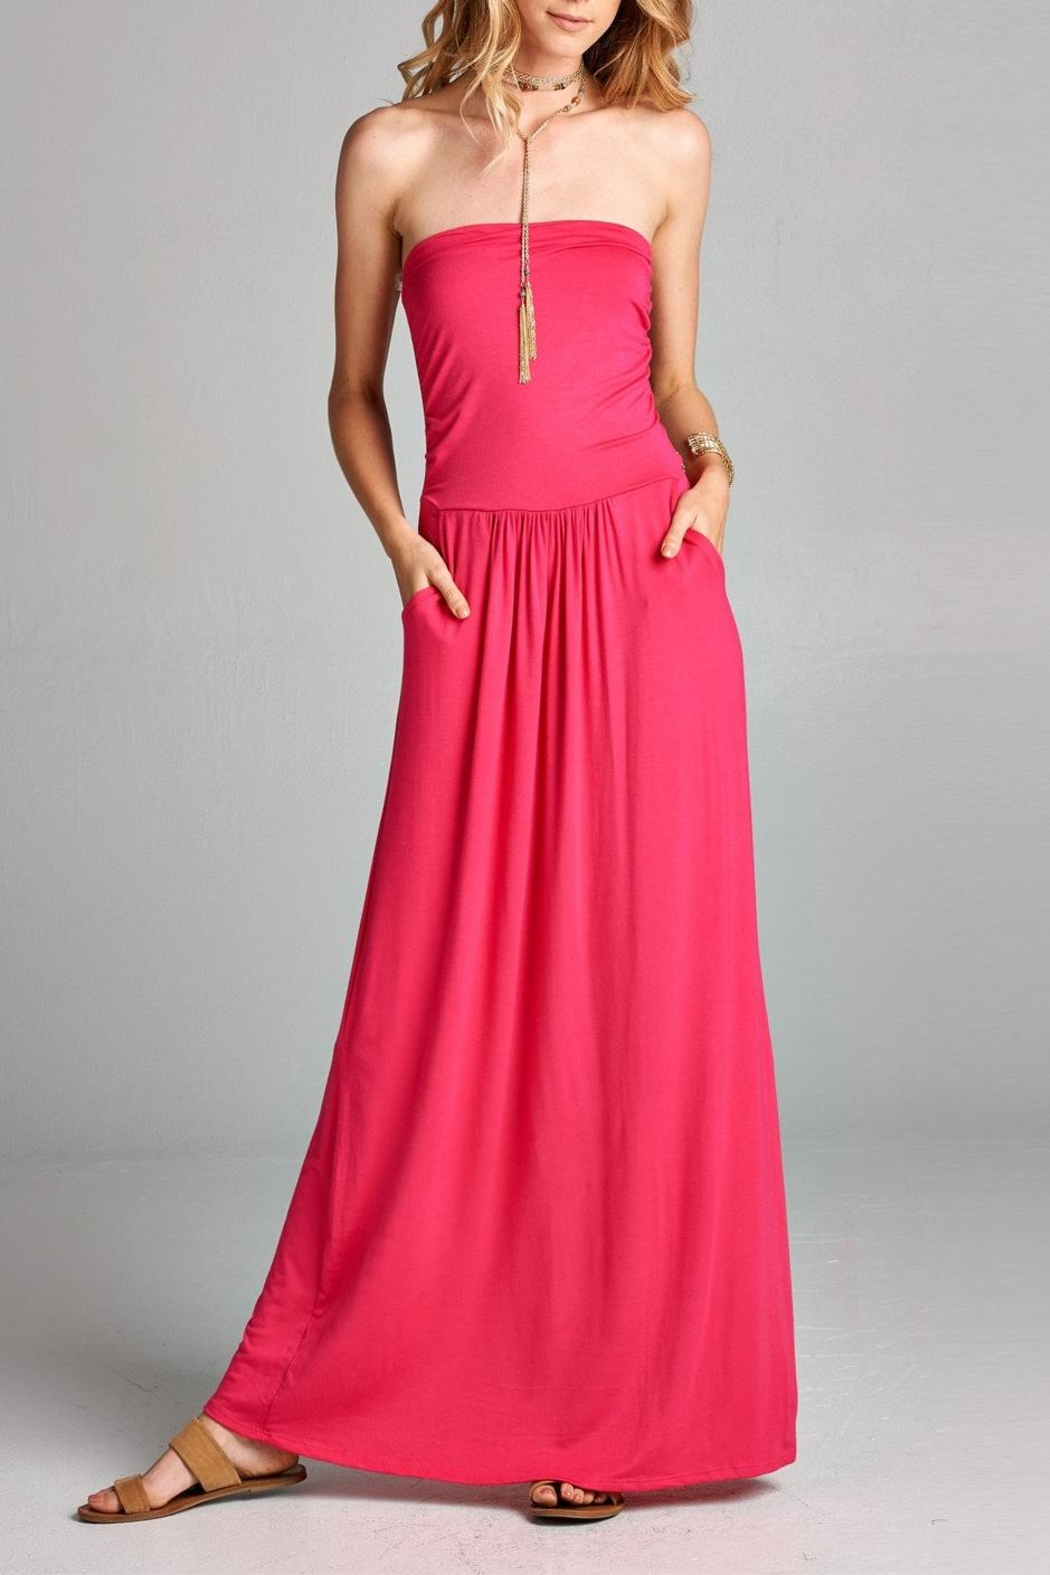 Love Kuza Casual Strapless Maxi - Main Image